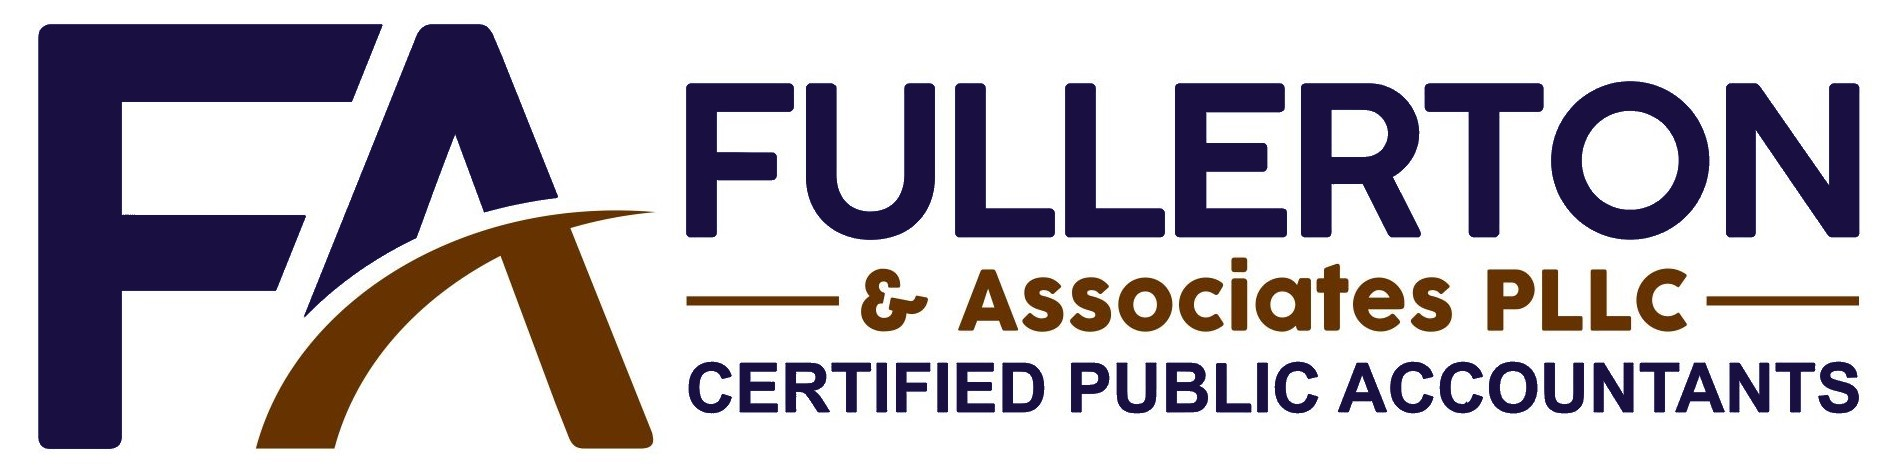 Abilene, Texas CPA Firm | Non-Filed Tax Returns Page | Fullerton & Associates PLLC